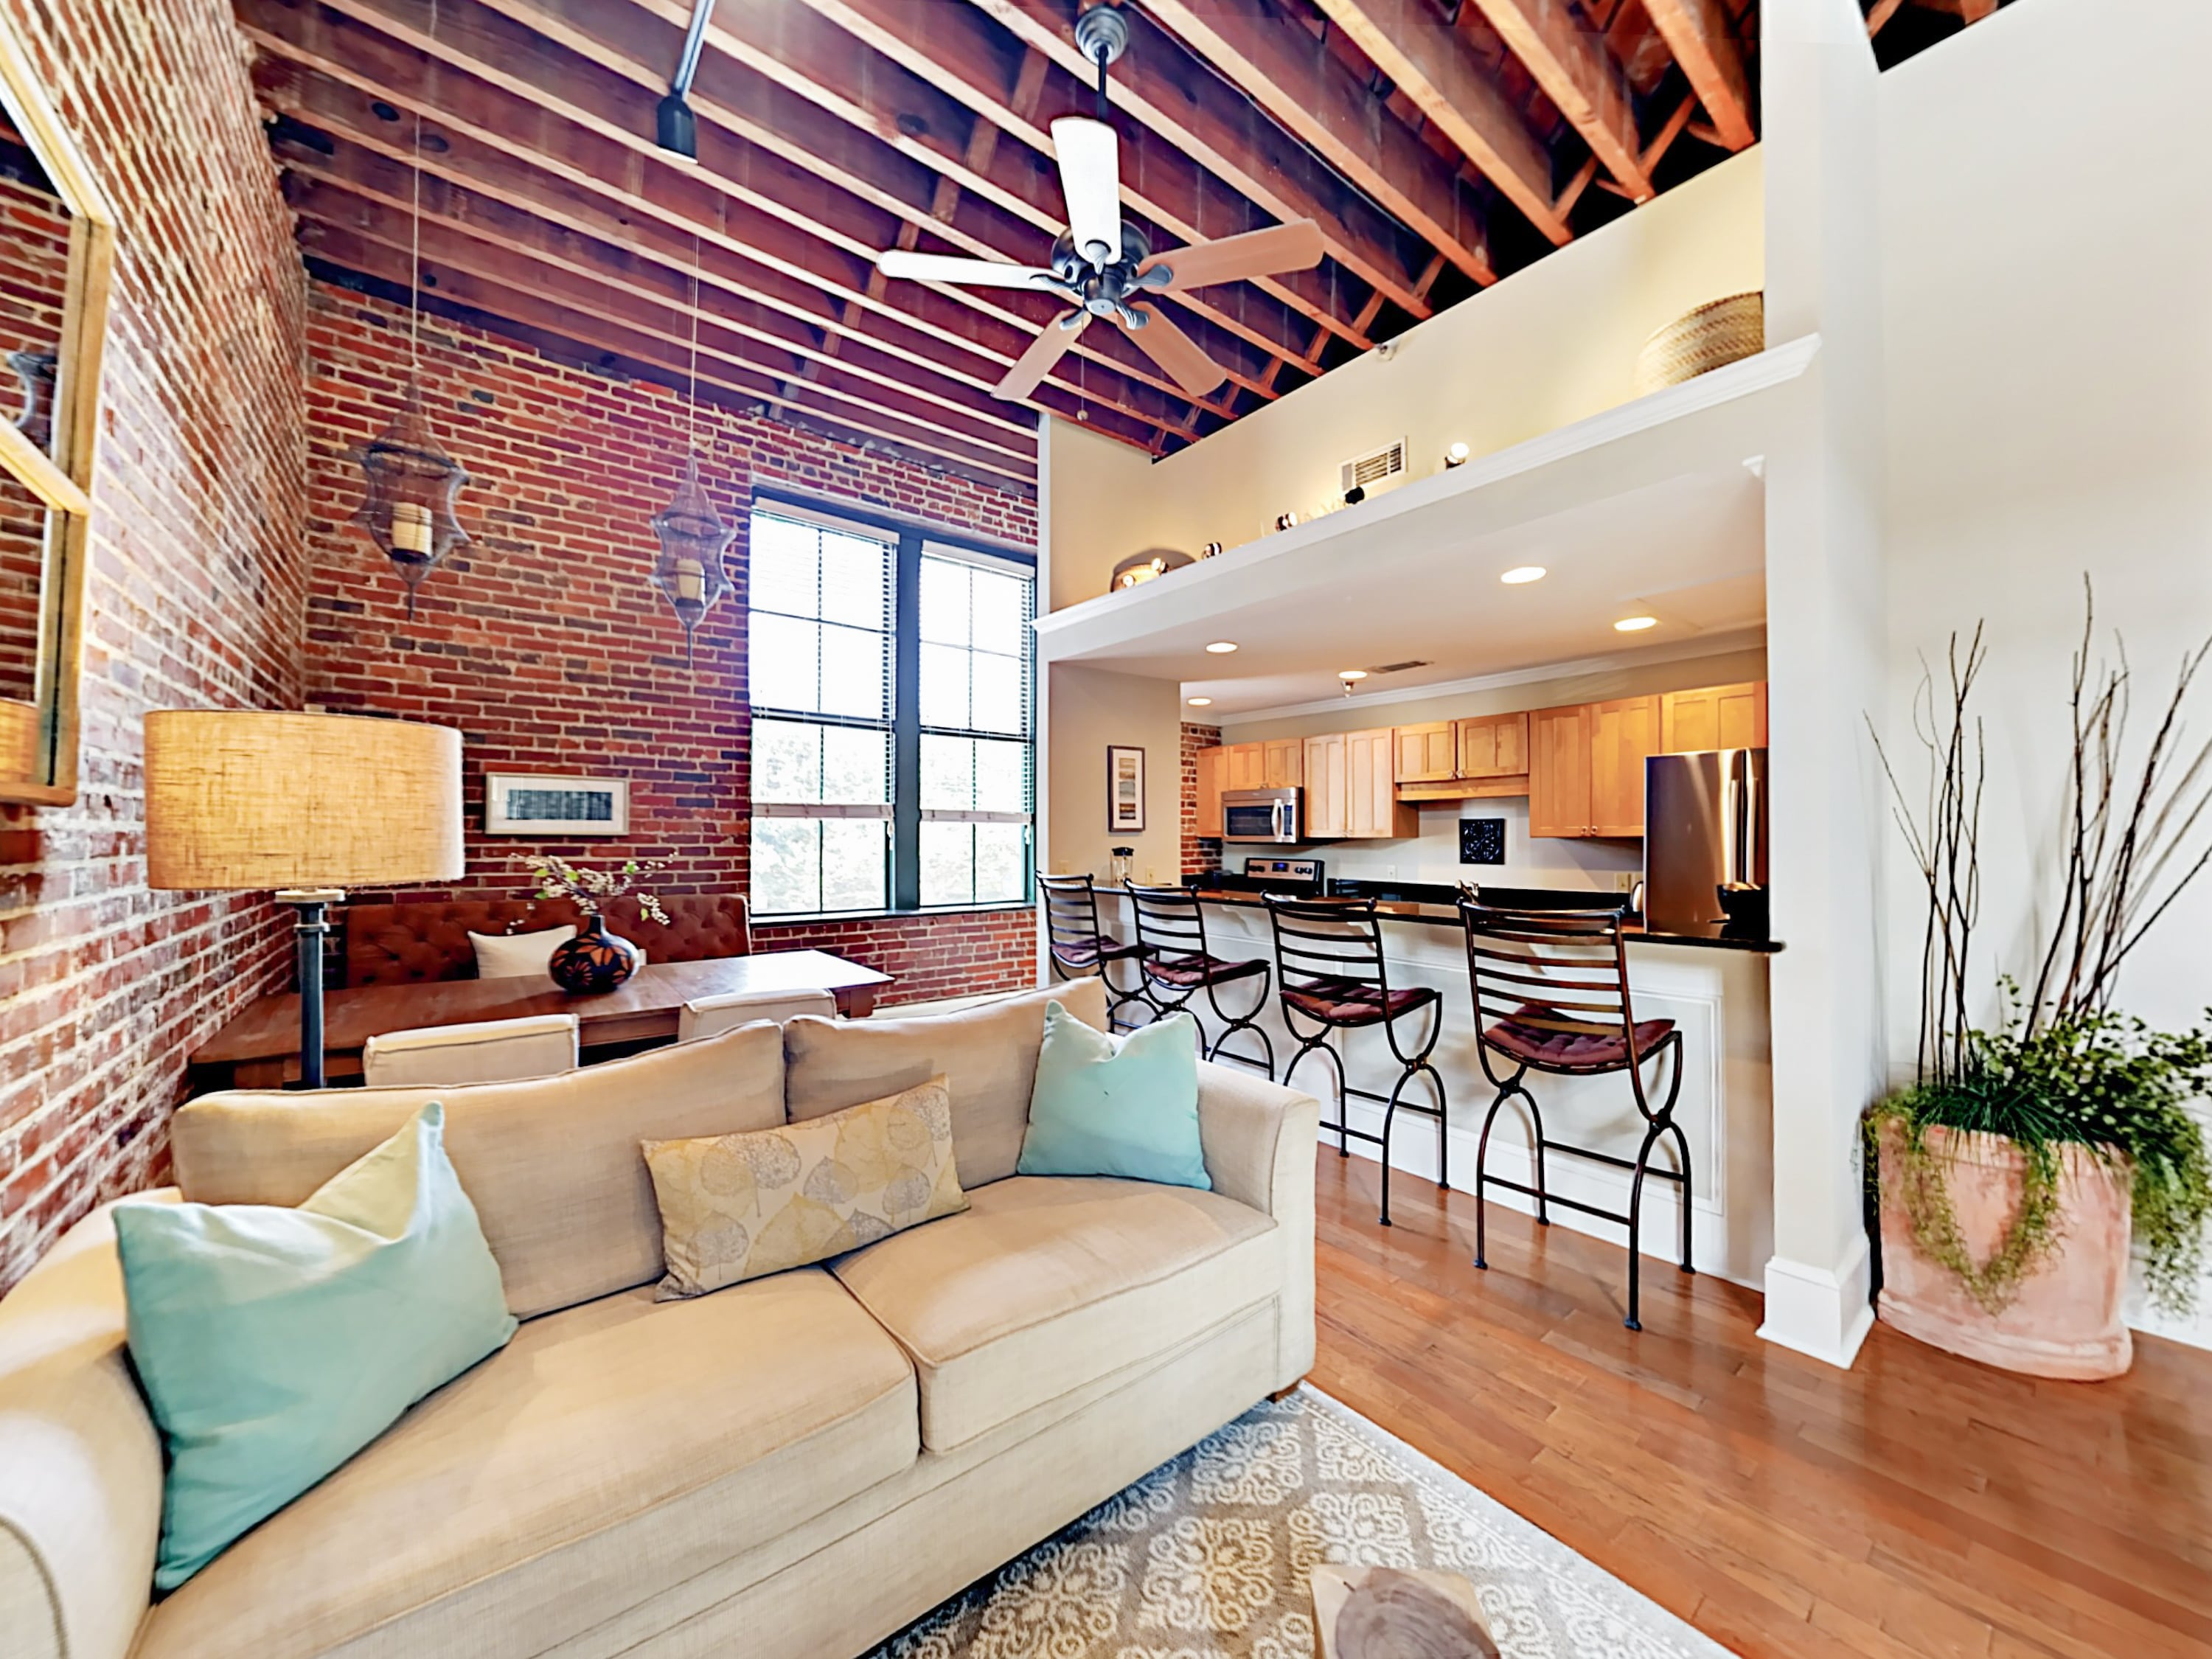 Originally built in 1860, this elegantly restored condo features tall ceilings with exposed beams, original brick walls, and hardwood floors.